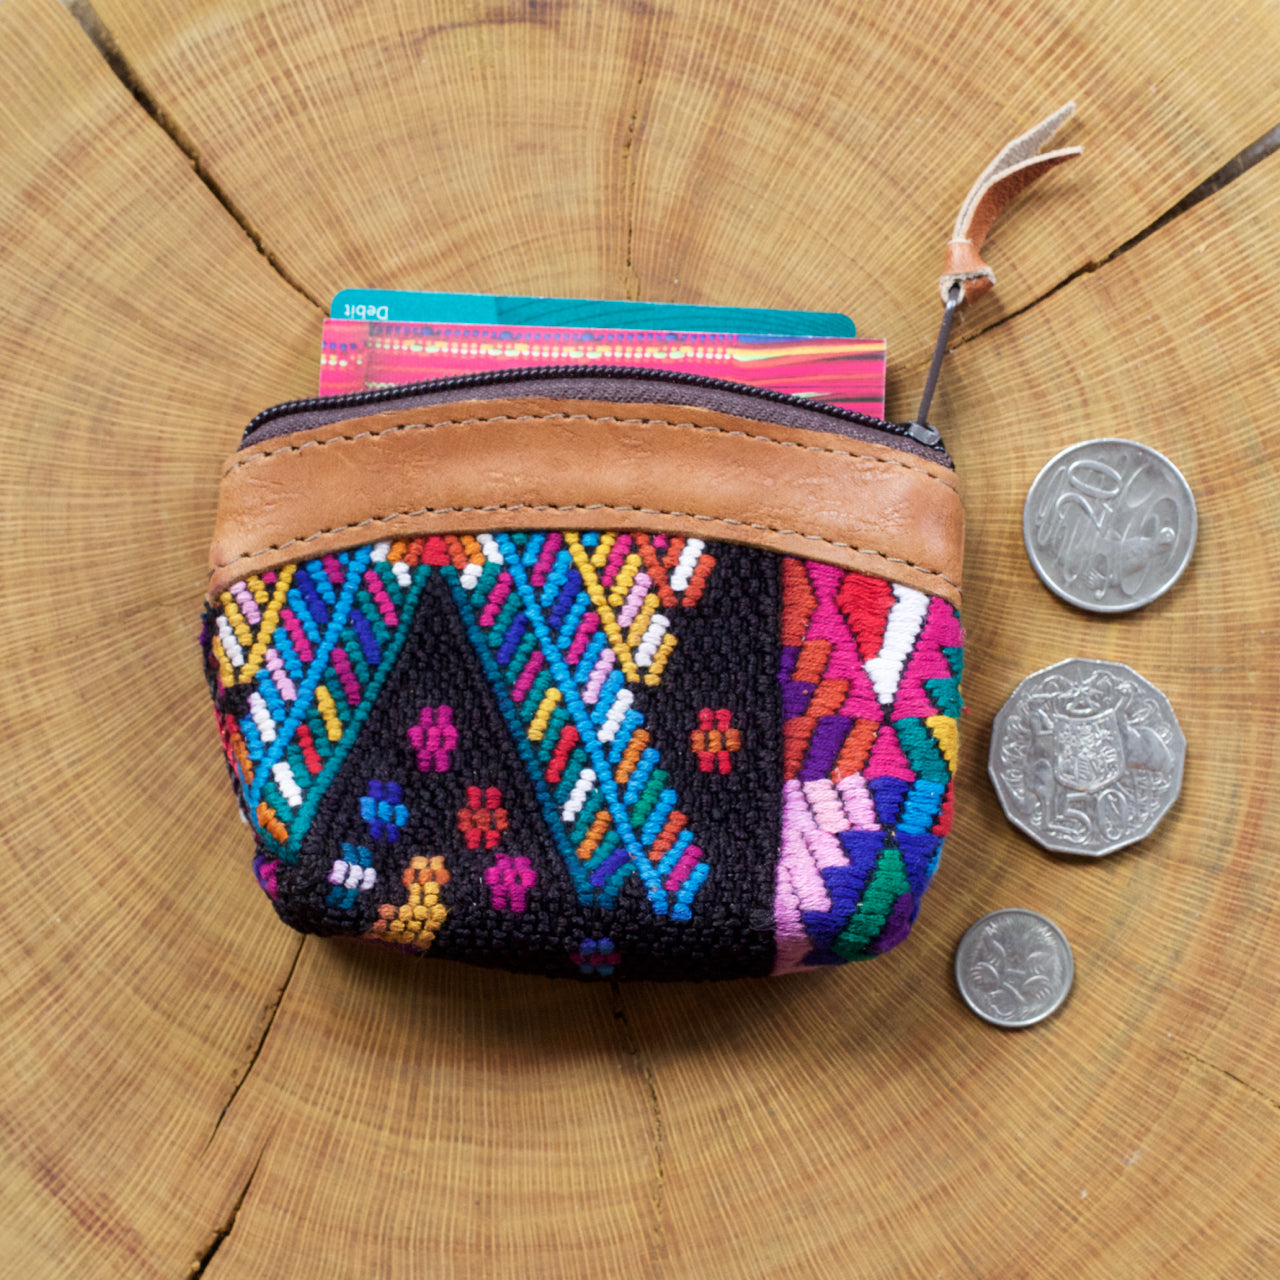 Pana Coin Pouch 25  Coin Pouch Multicolour - Cielo Collective handmade with tradition creativity and integrity